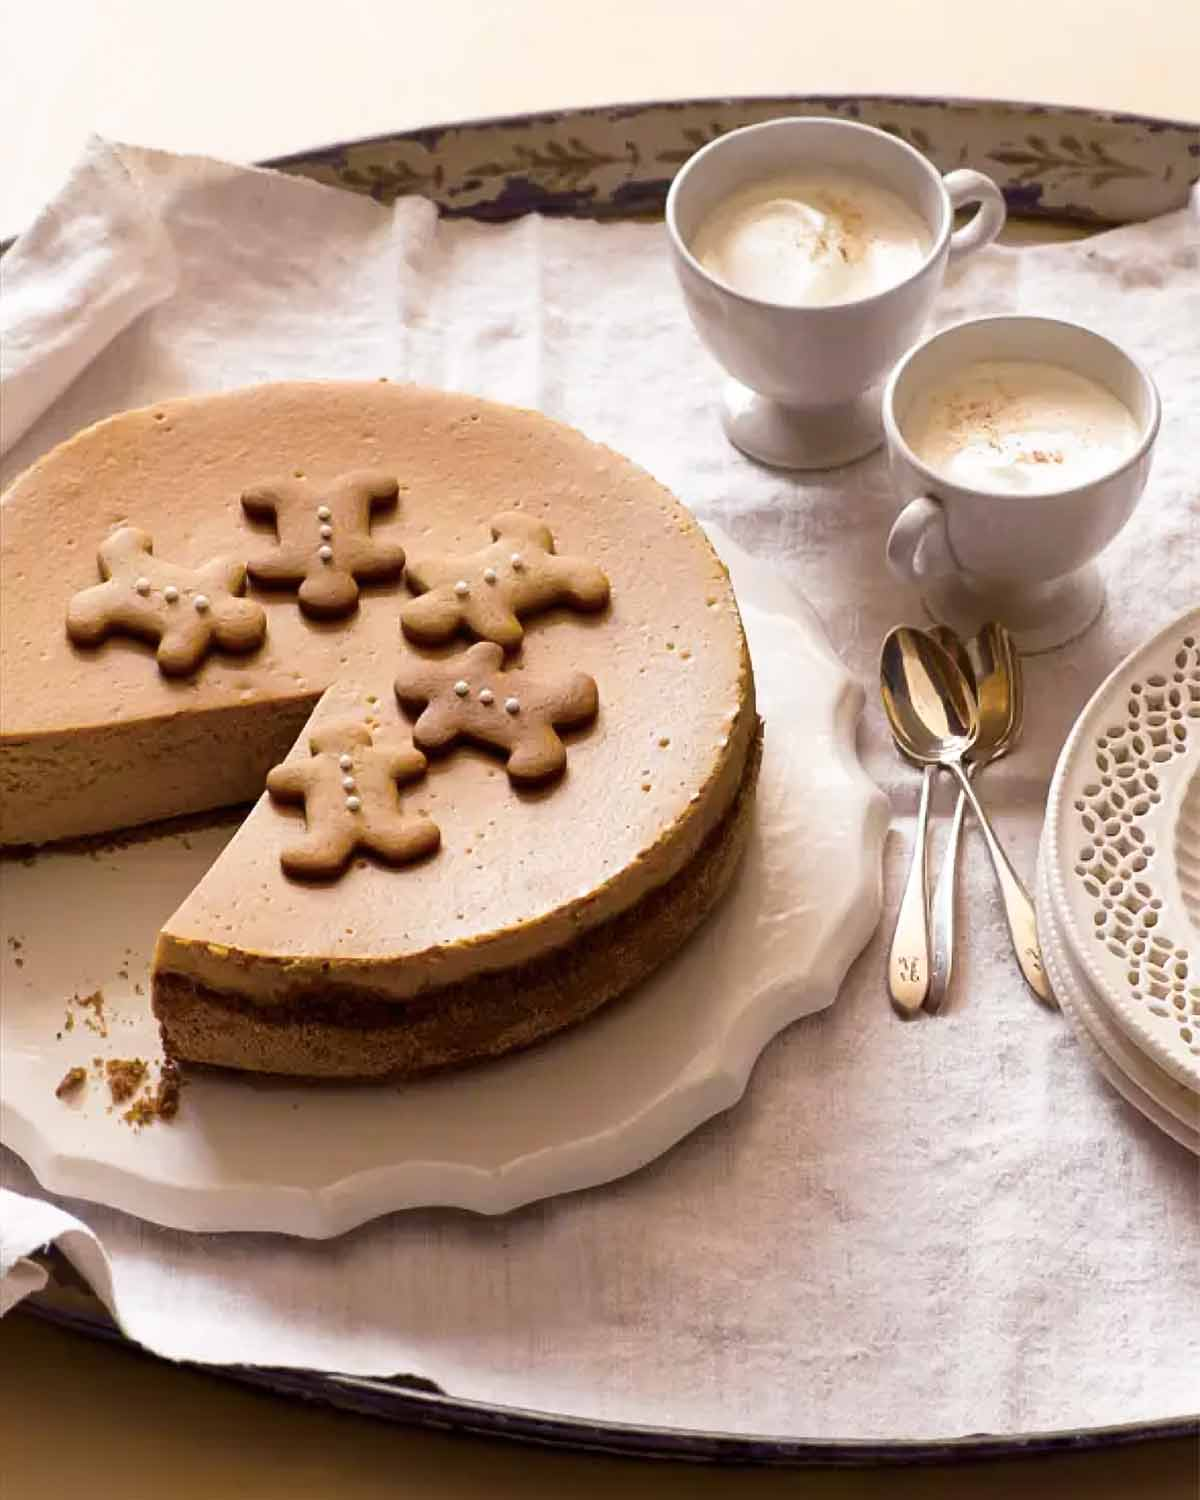 A whole gingerbread cheesecake on a white platter with a slice missing from it.